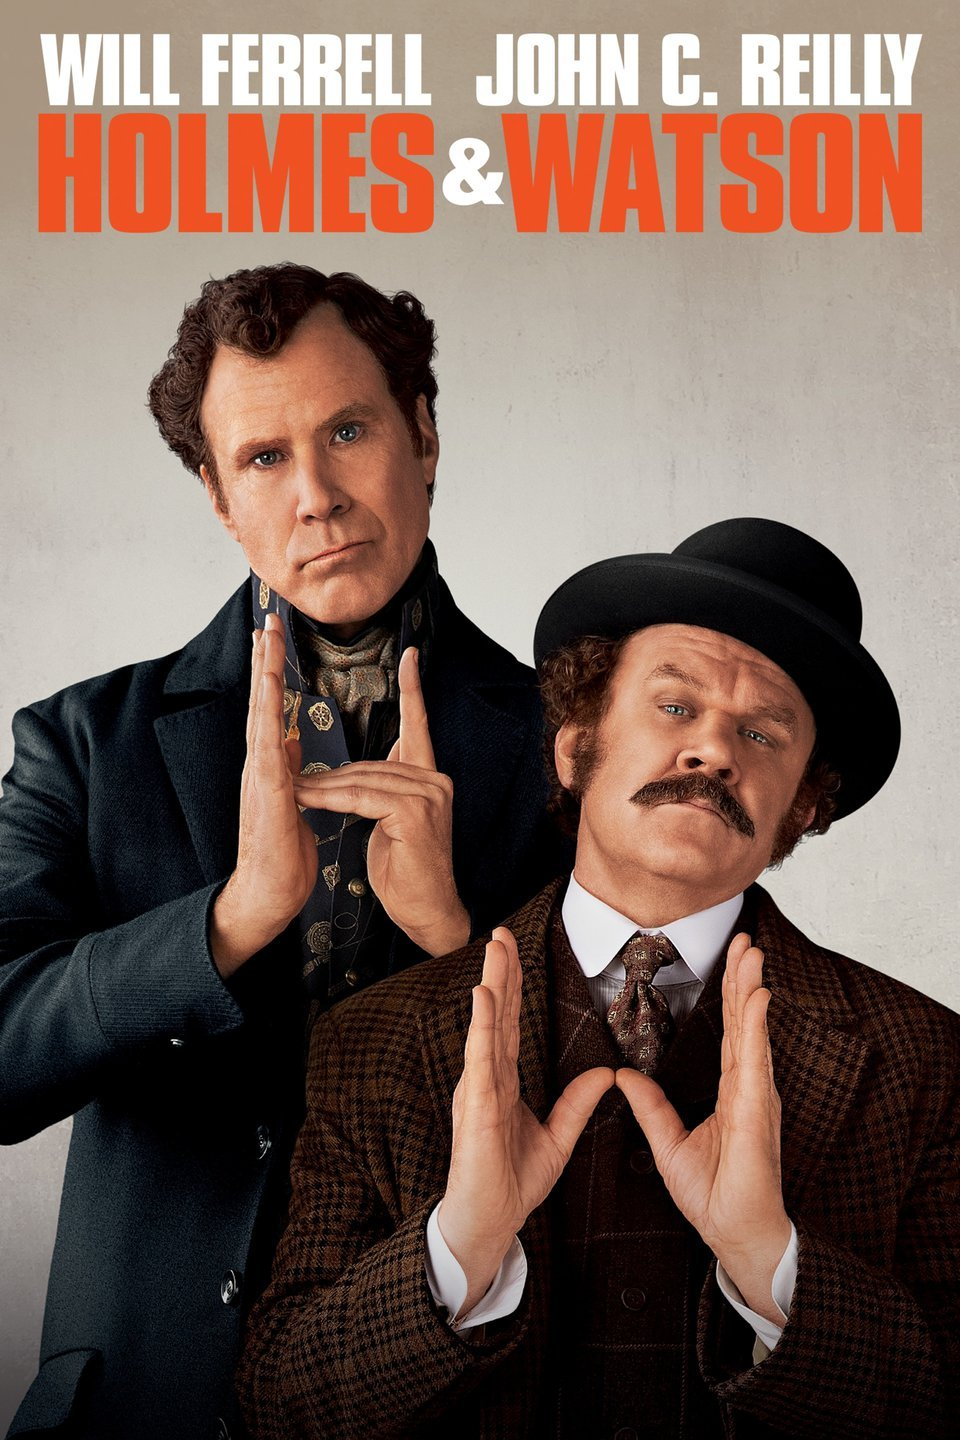 Holmes and Watson (2018) - Directed by: Etan CohenStarring: Will Ferrell, John C. Reilly, Rebecca Hall, Ralph Fiennes, Kelly MacDonald, Pam FerrisRated: PG-13 for Crude Sexual Material, Some Violence, Language and Drug ReferencesRunning Time: 1h 29mTMM Score: 1 StarSTRENGTHS: End CreditsWEAKNESSES: Literally Everything